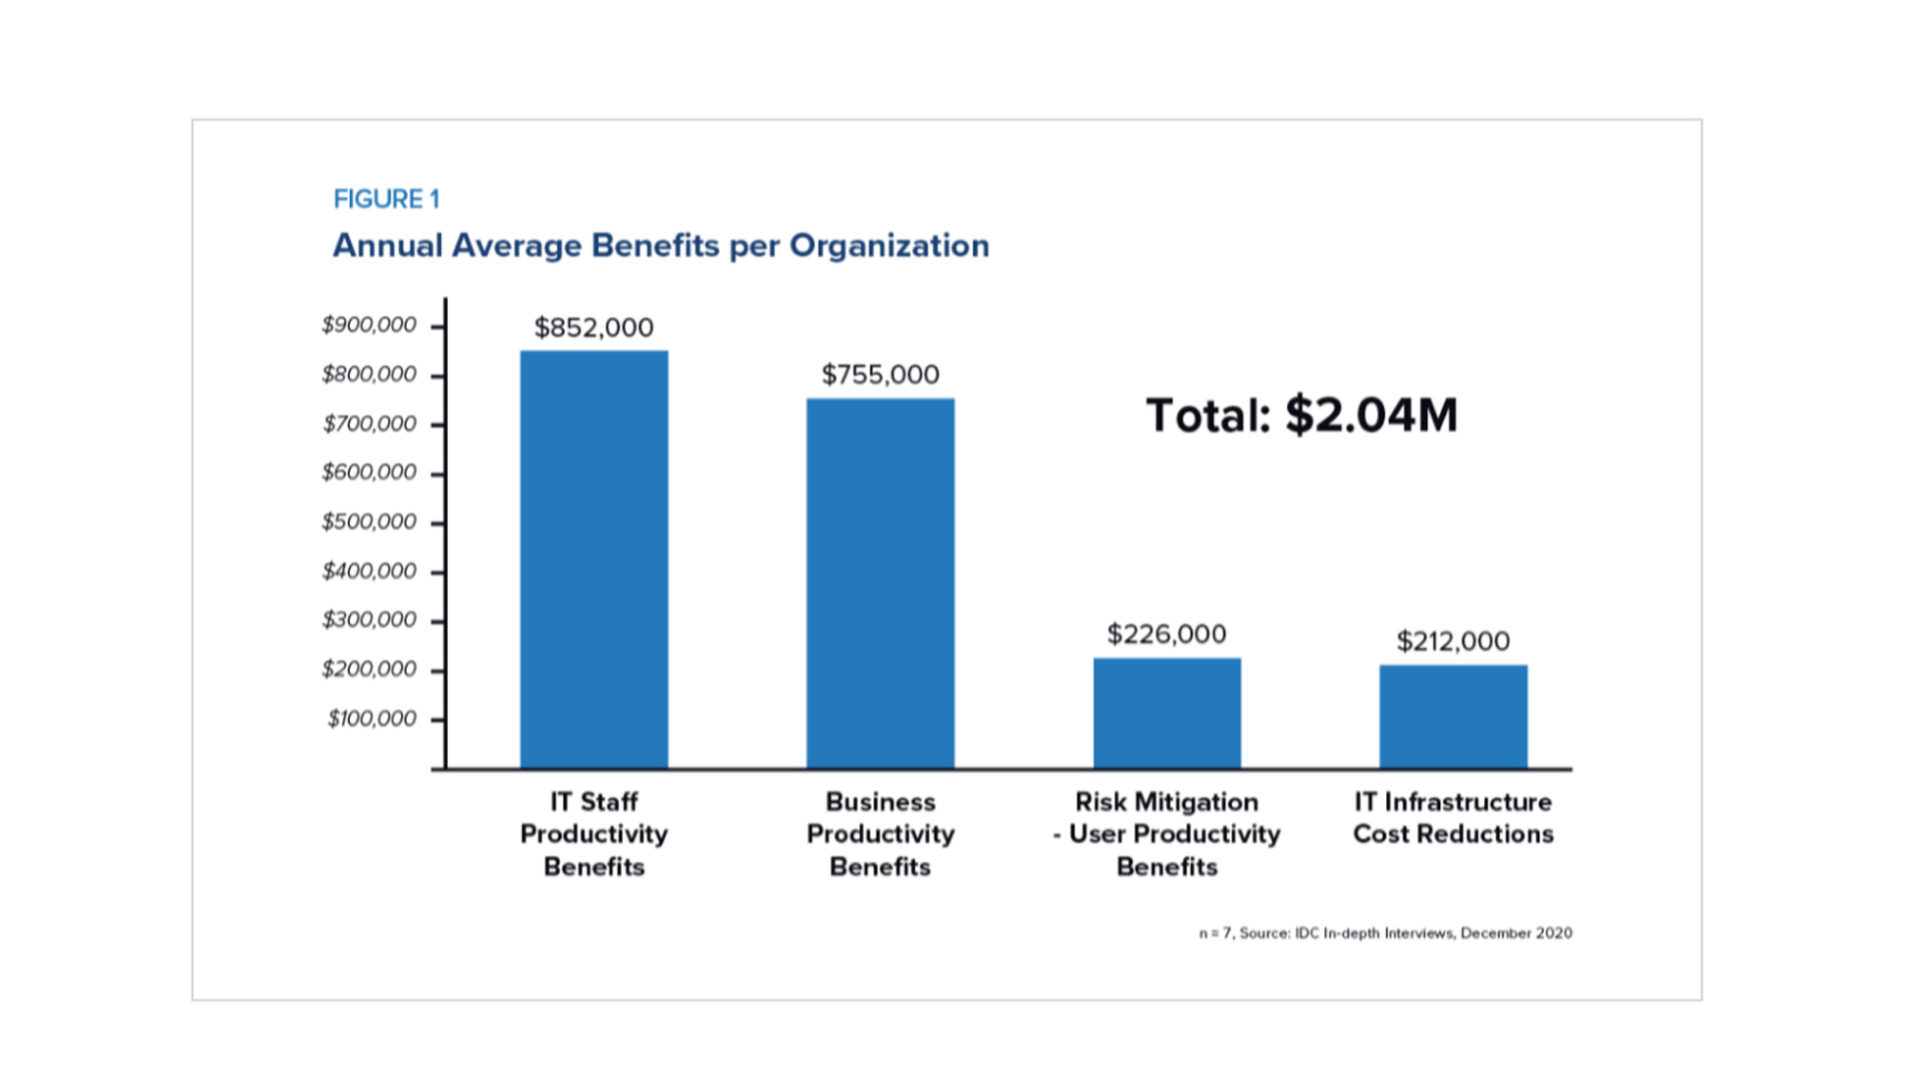 Annual Average Benefits per Organization with Oracle ADW